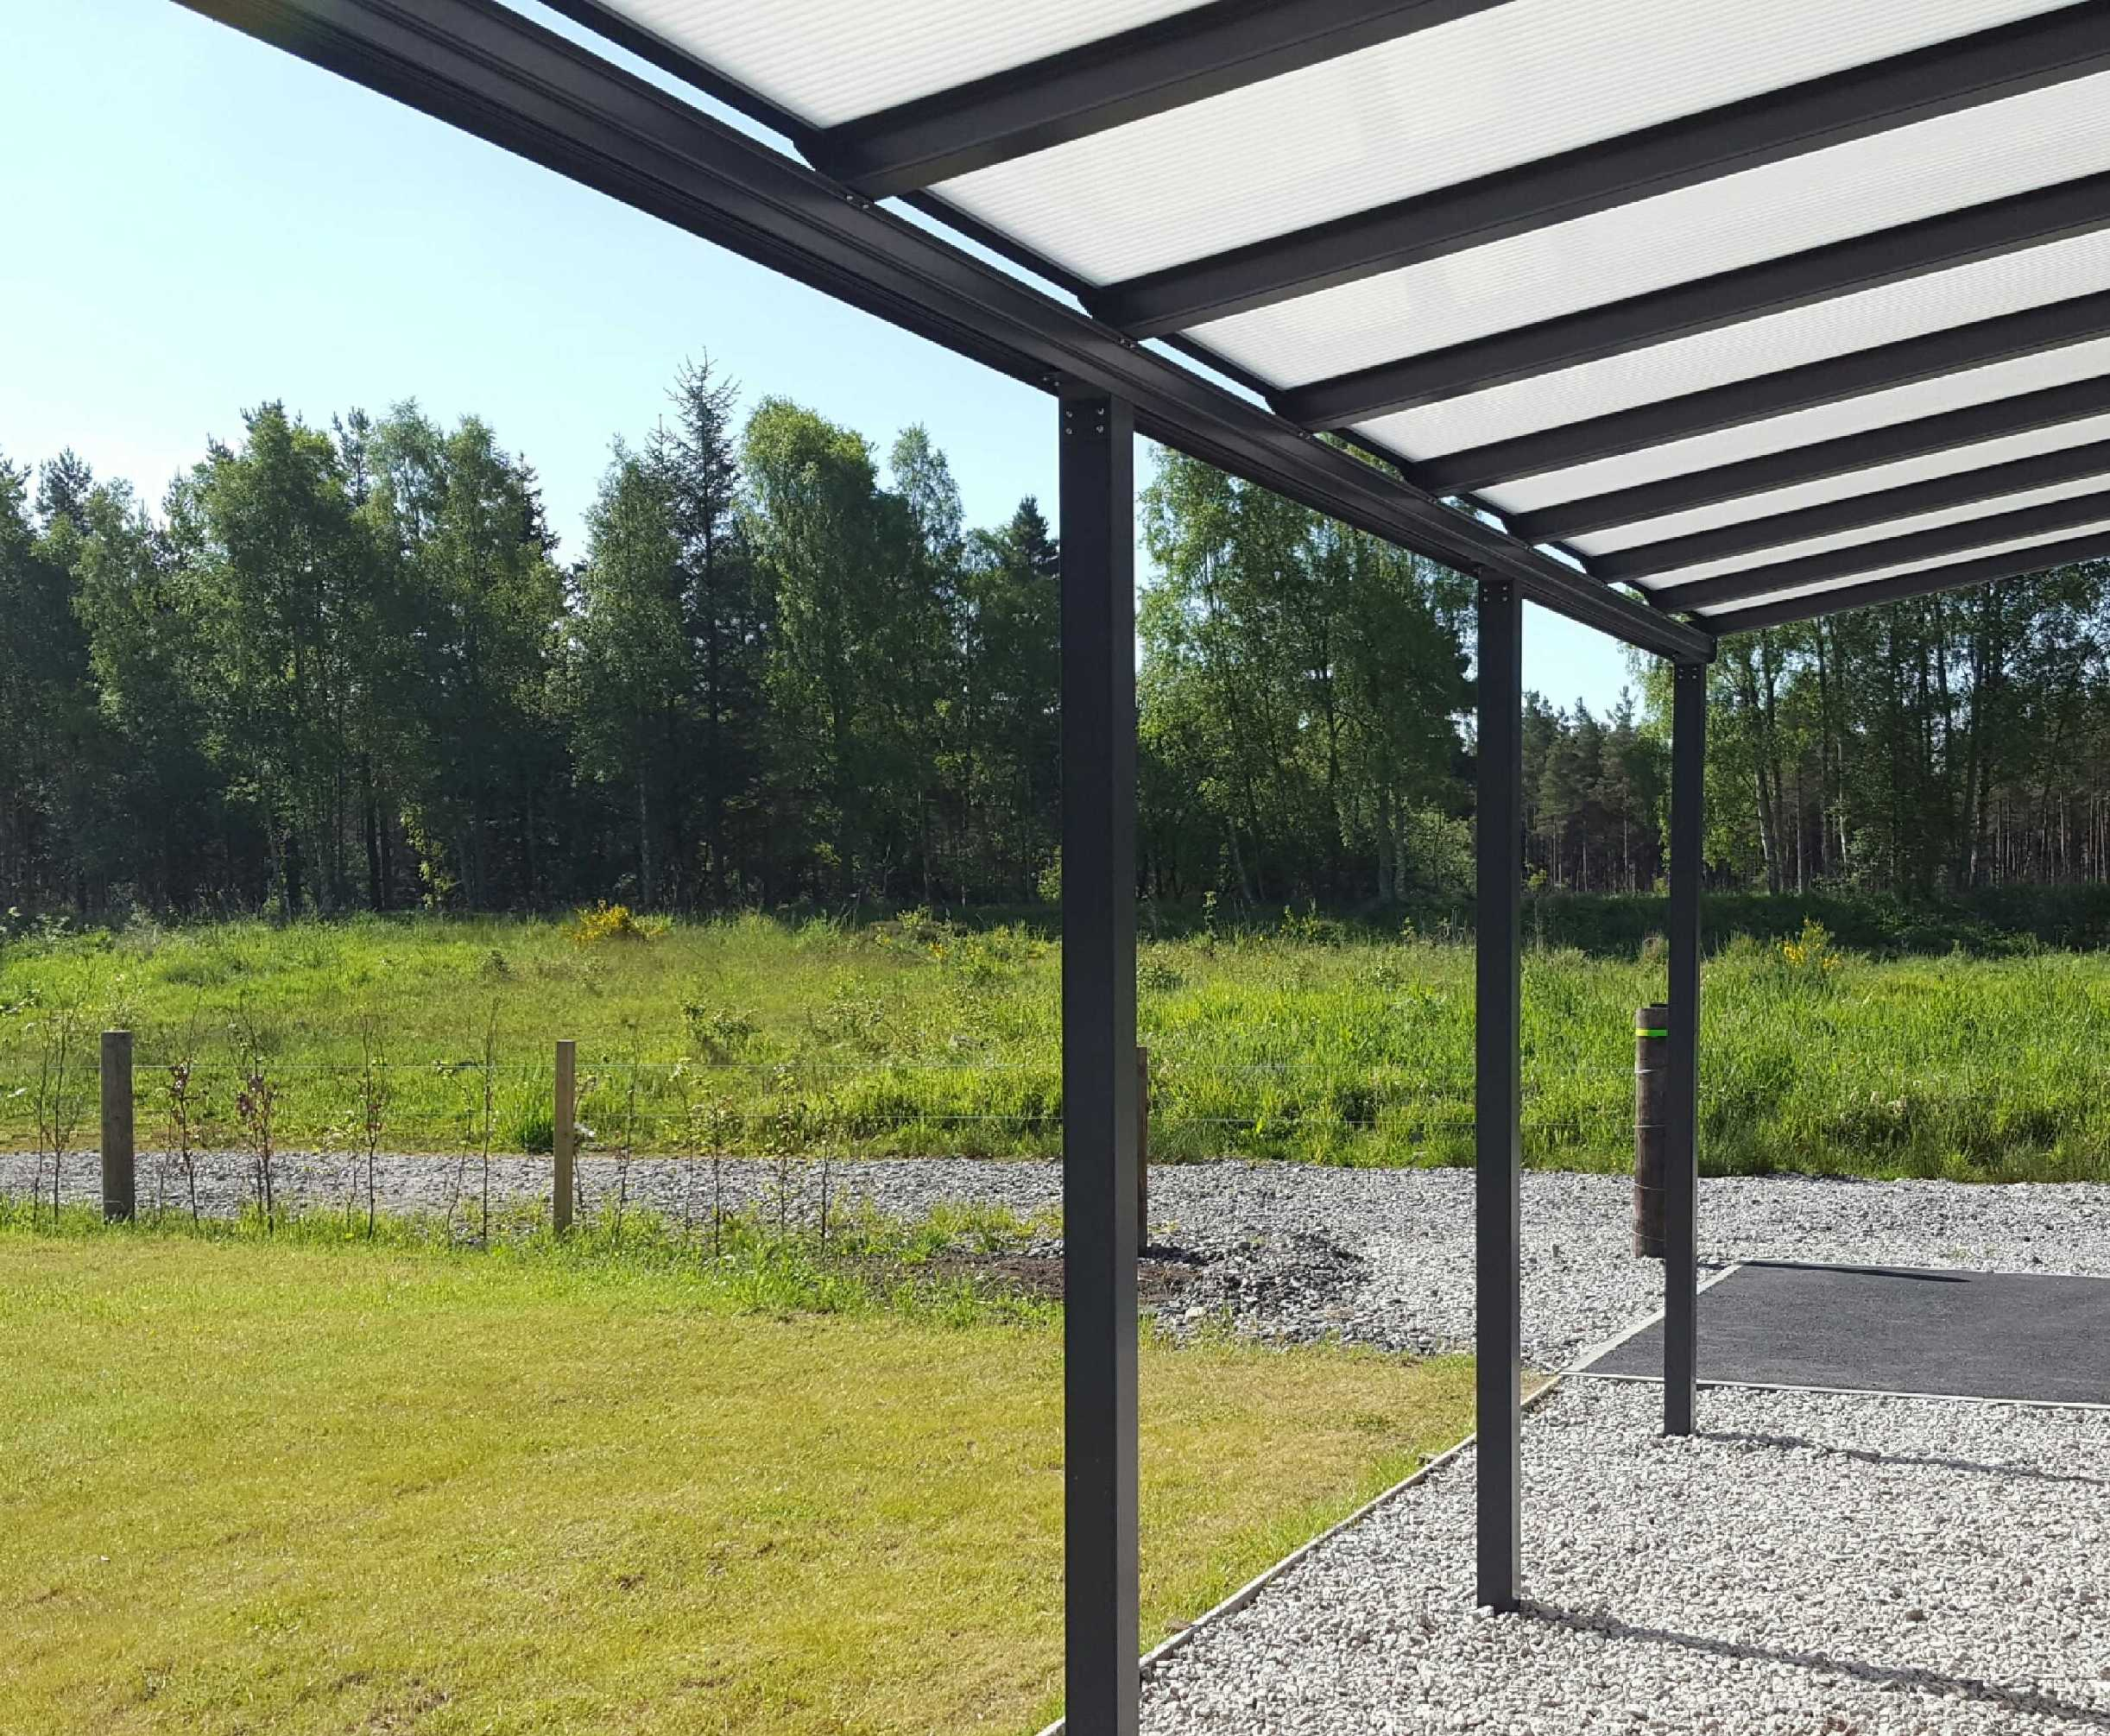 Omega Smart Lean-To Canopy, Anthracite Grey, 16mm Polycarbonate Glazing - 7.4m (W) x 3.0m (P), (4) Supporting Posts